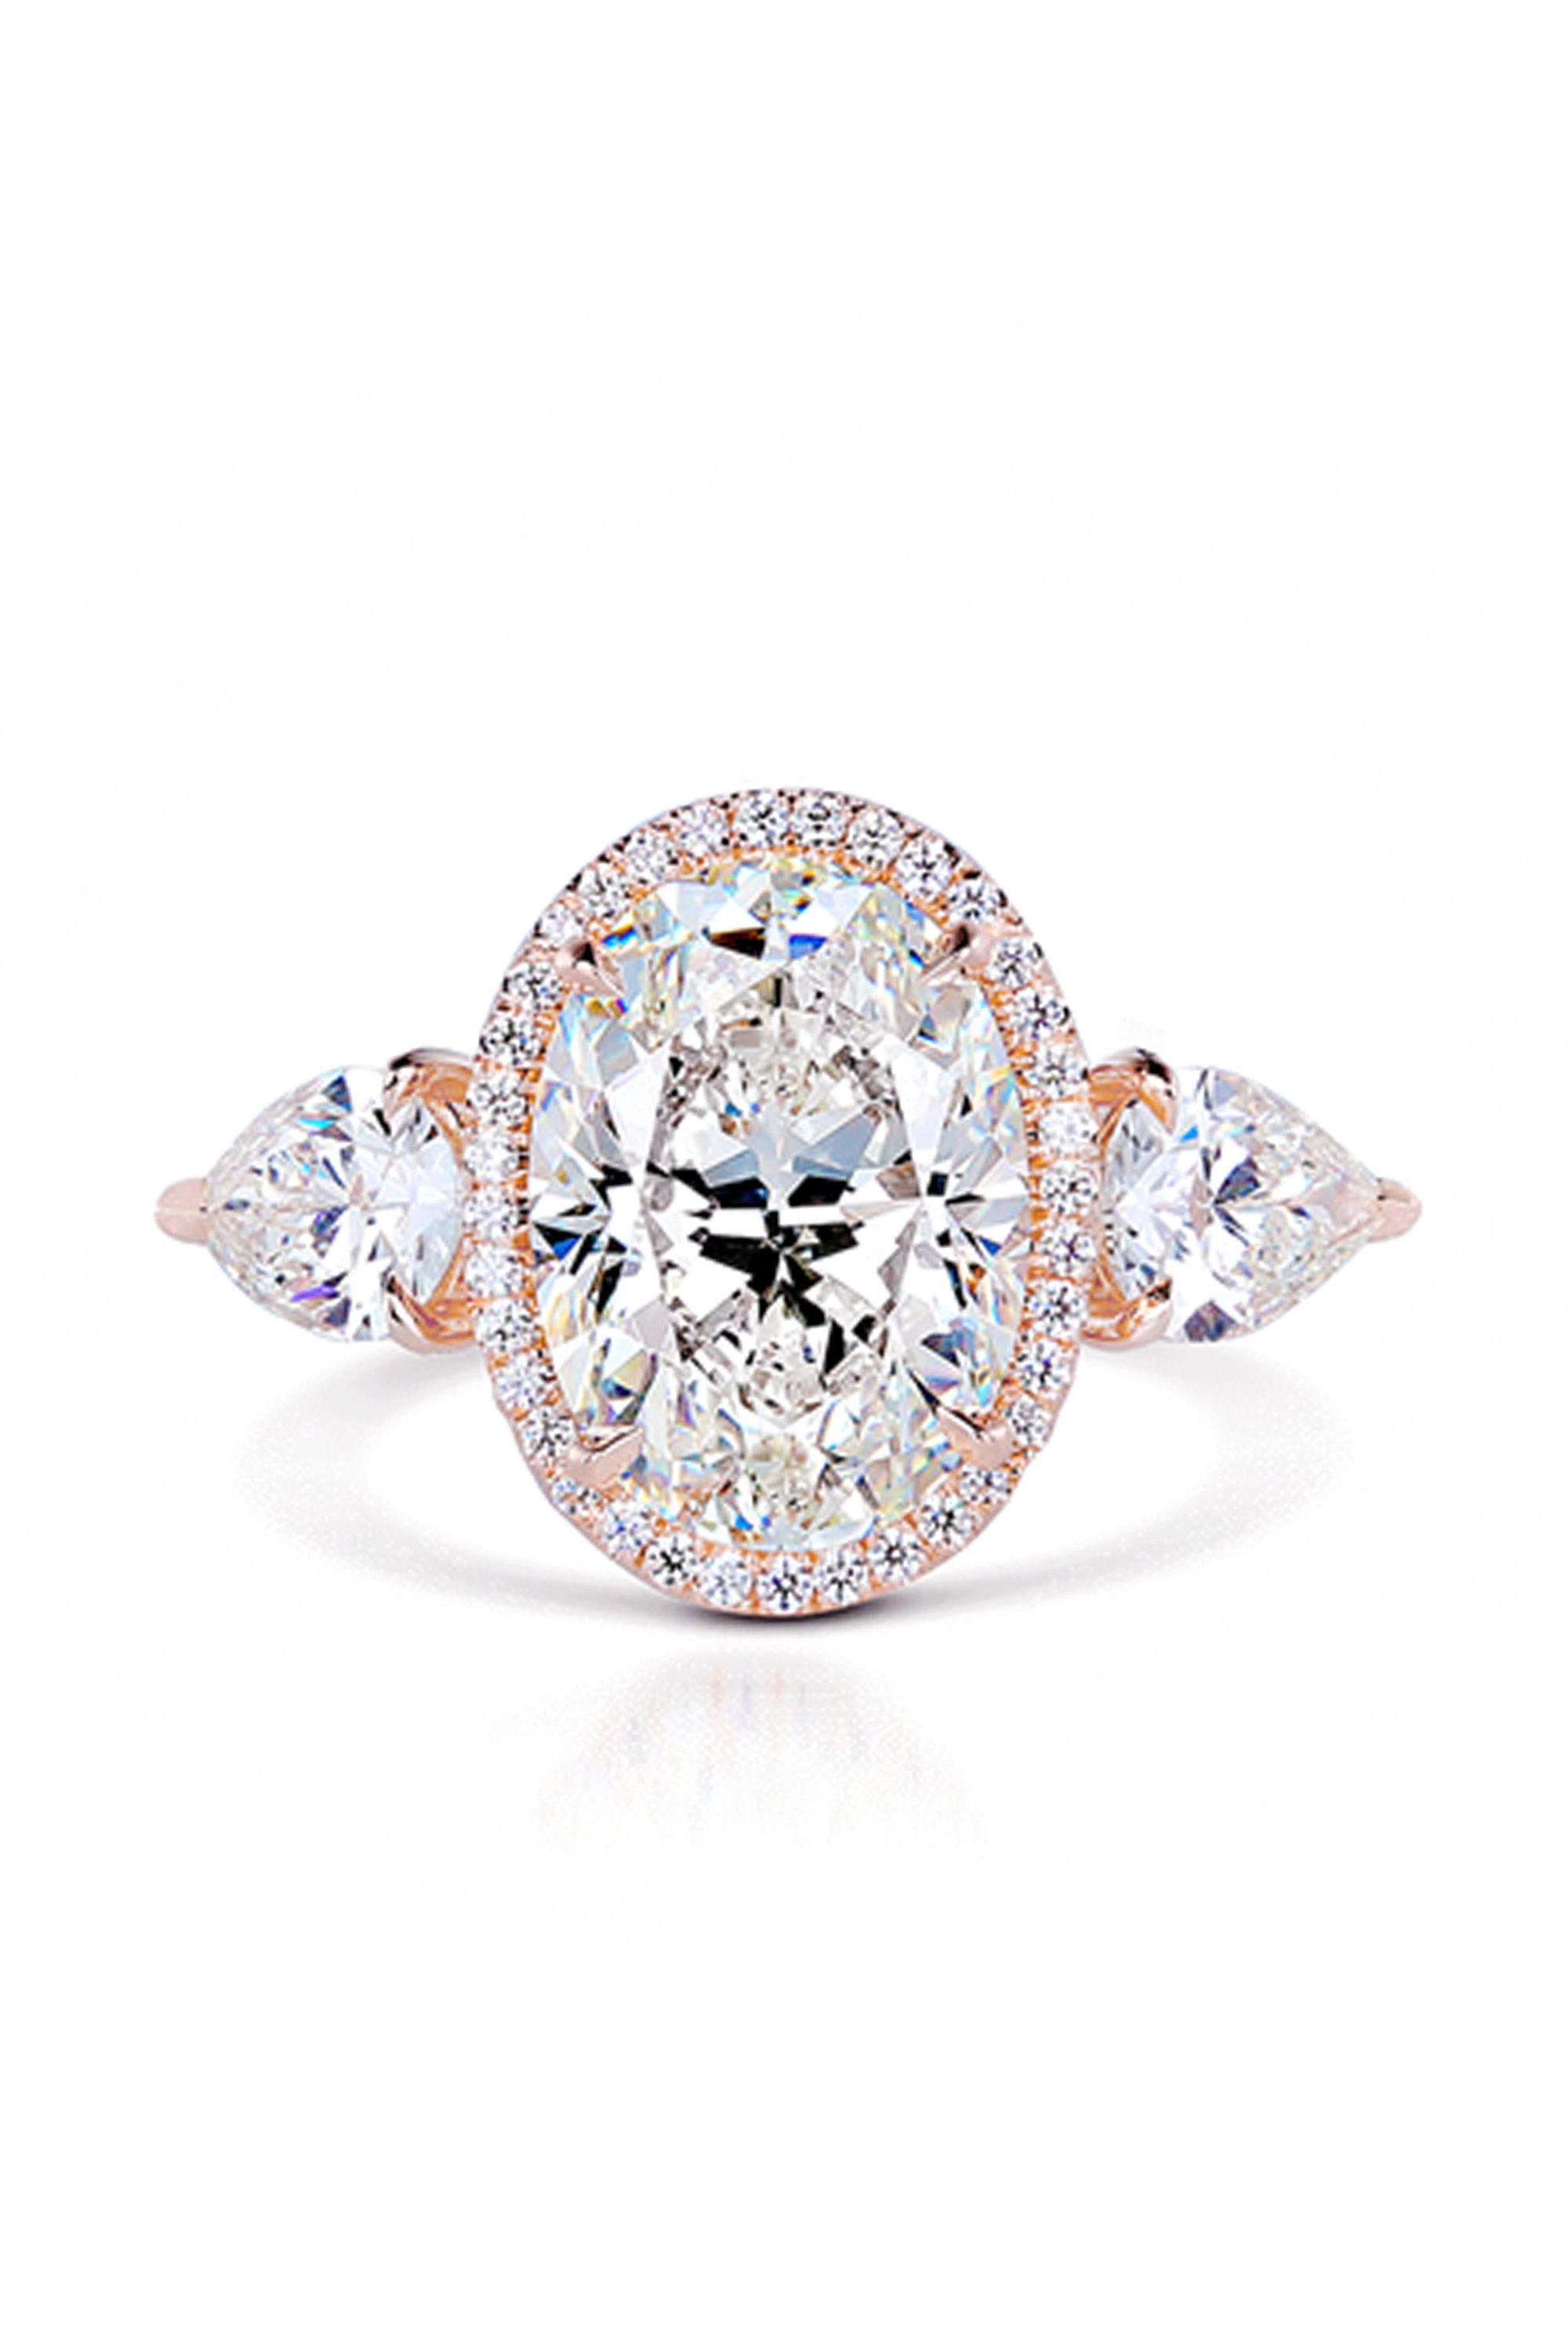 diamond shaped rings gold p stone ring halo engagement pear white multi